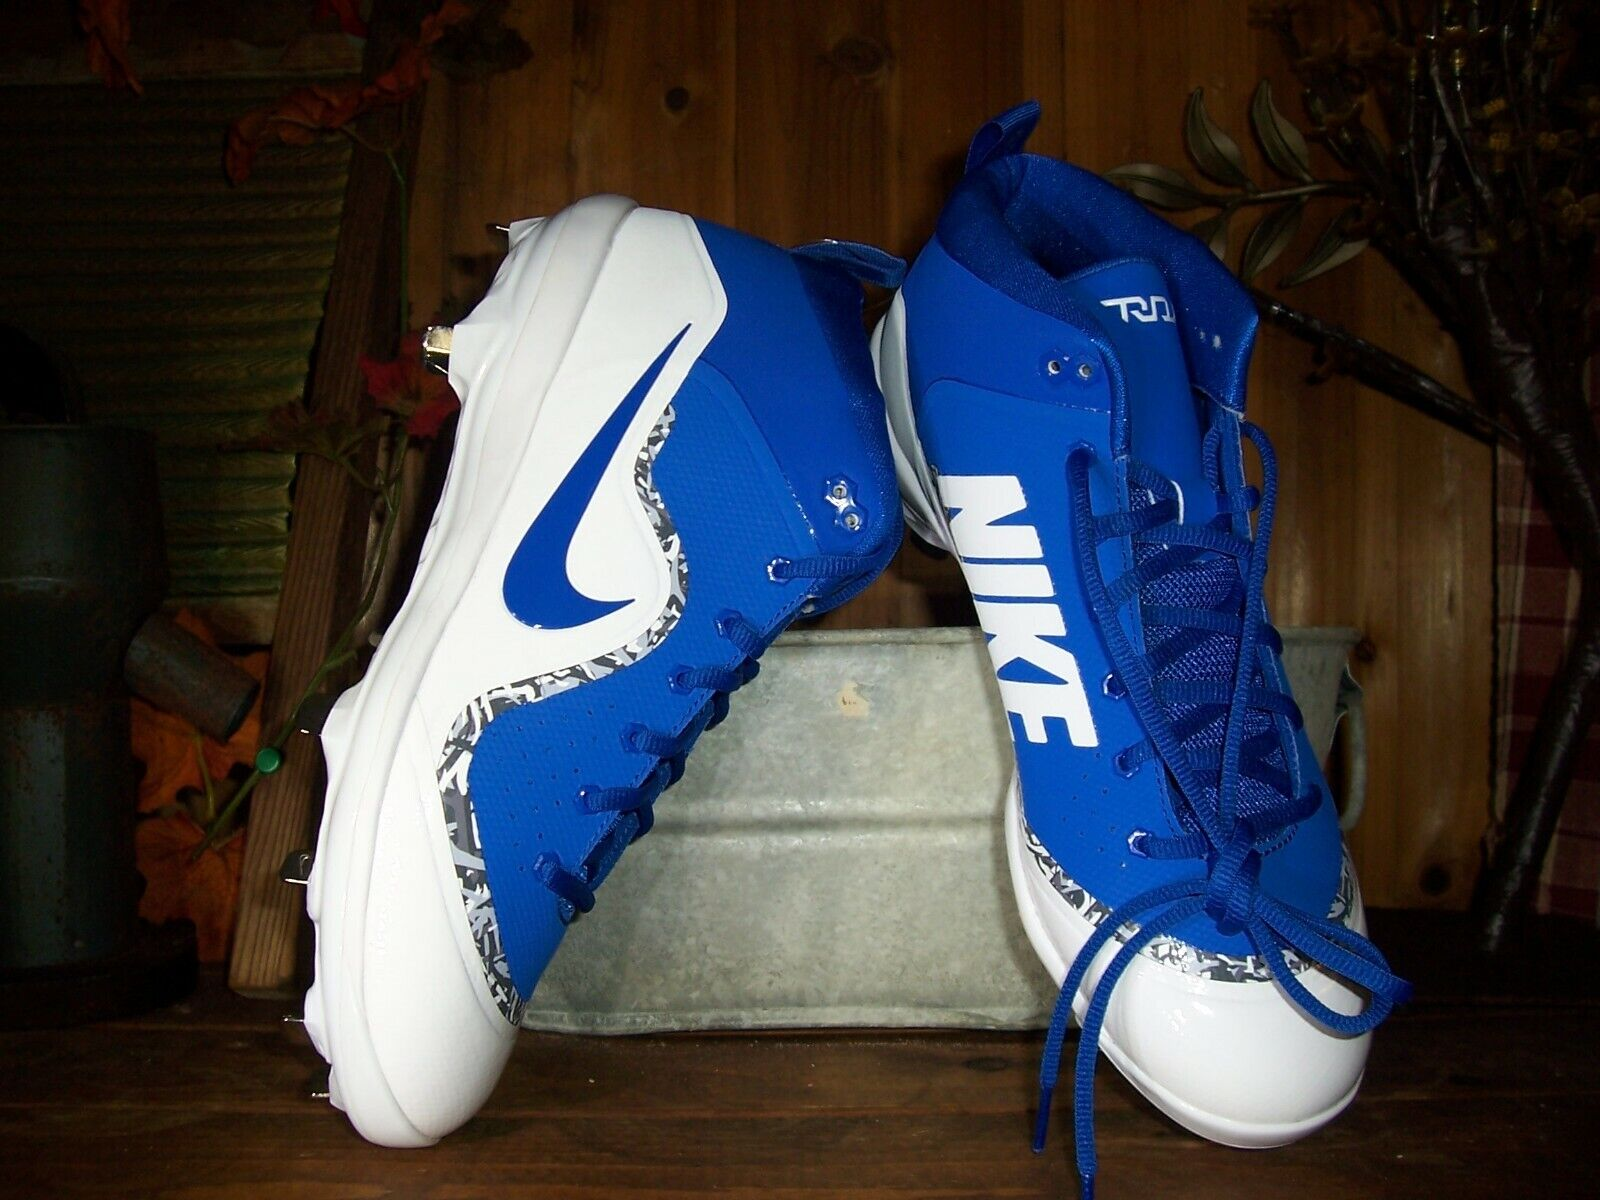 NIKE MENS ANKLE TOP FOOTBALL CLEATS SHOES SIZE 9.5 blueE WHITE SPORTS SHOES NEW